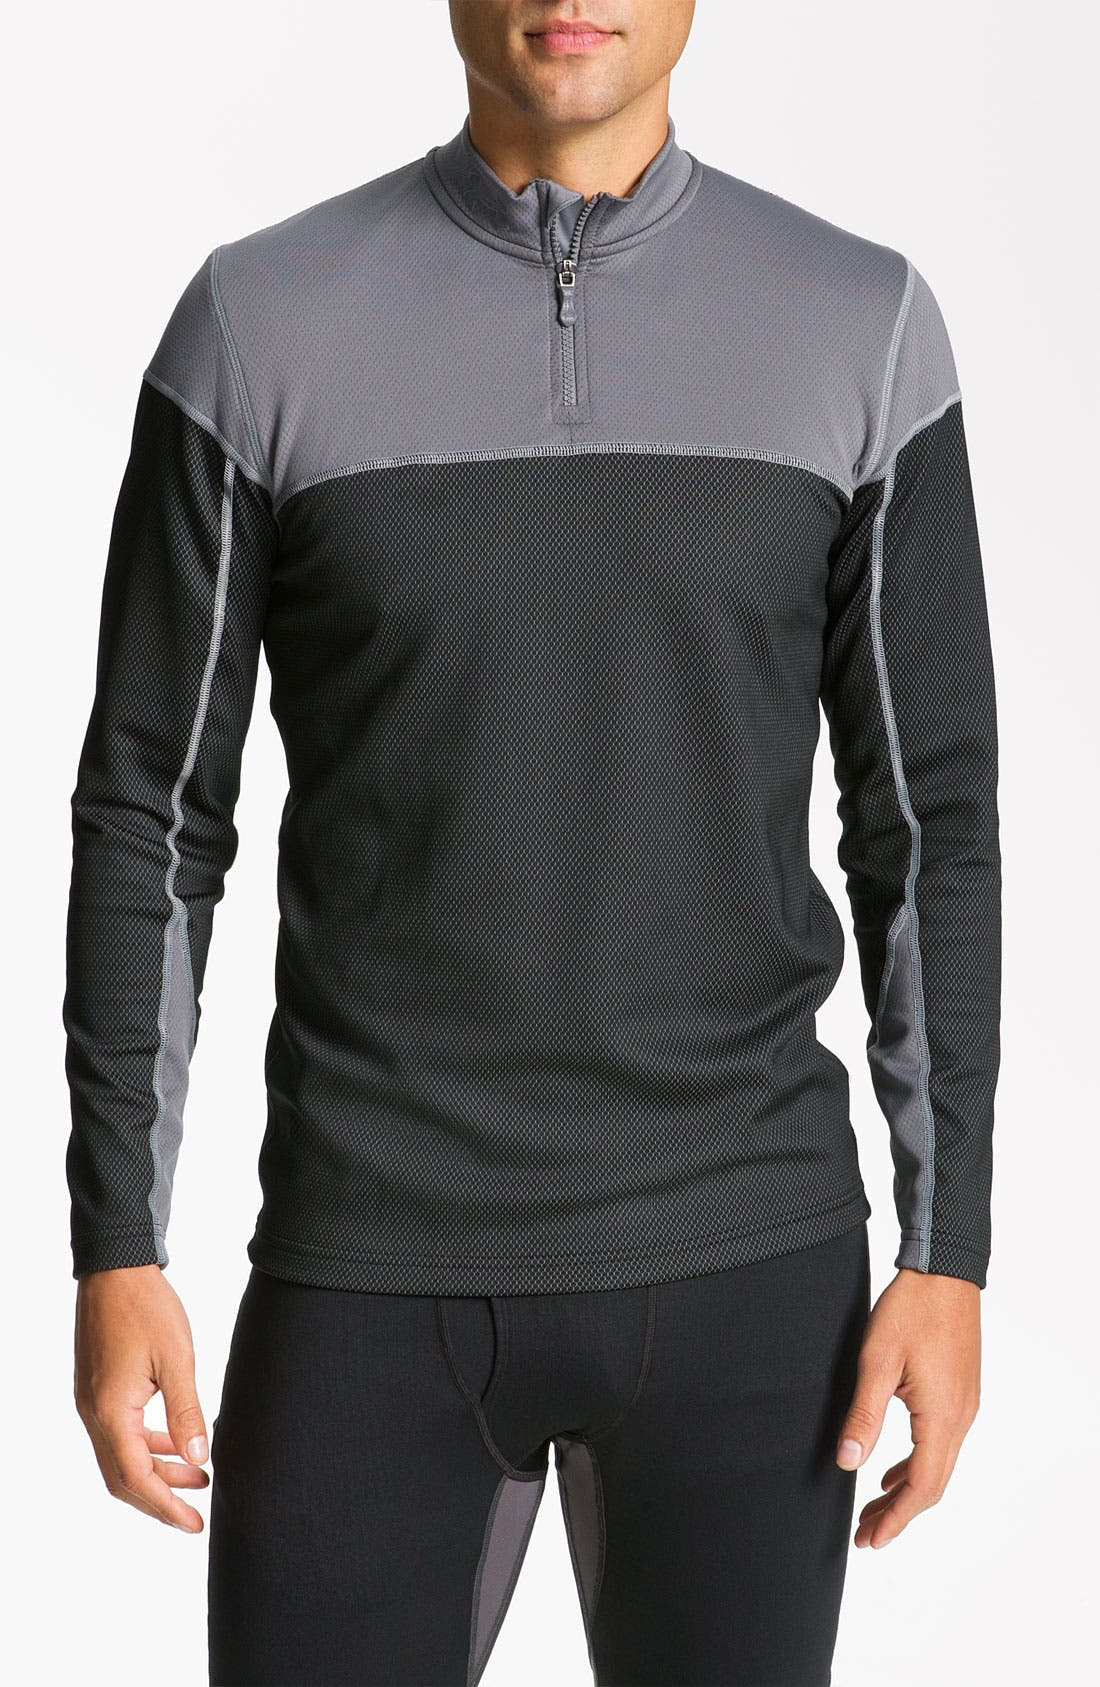 Alternate Image 1 Selected - Under Armour 'CG Thermo' Fitted Quarter Zip Running Top